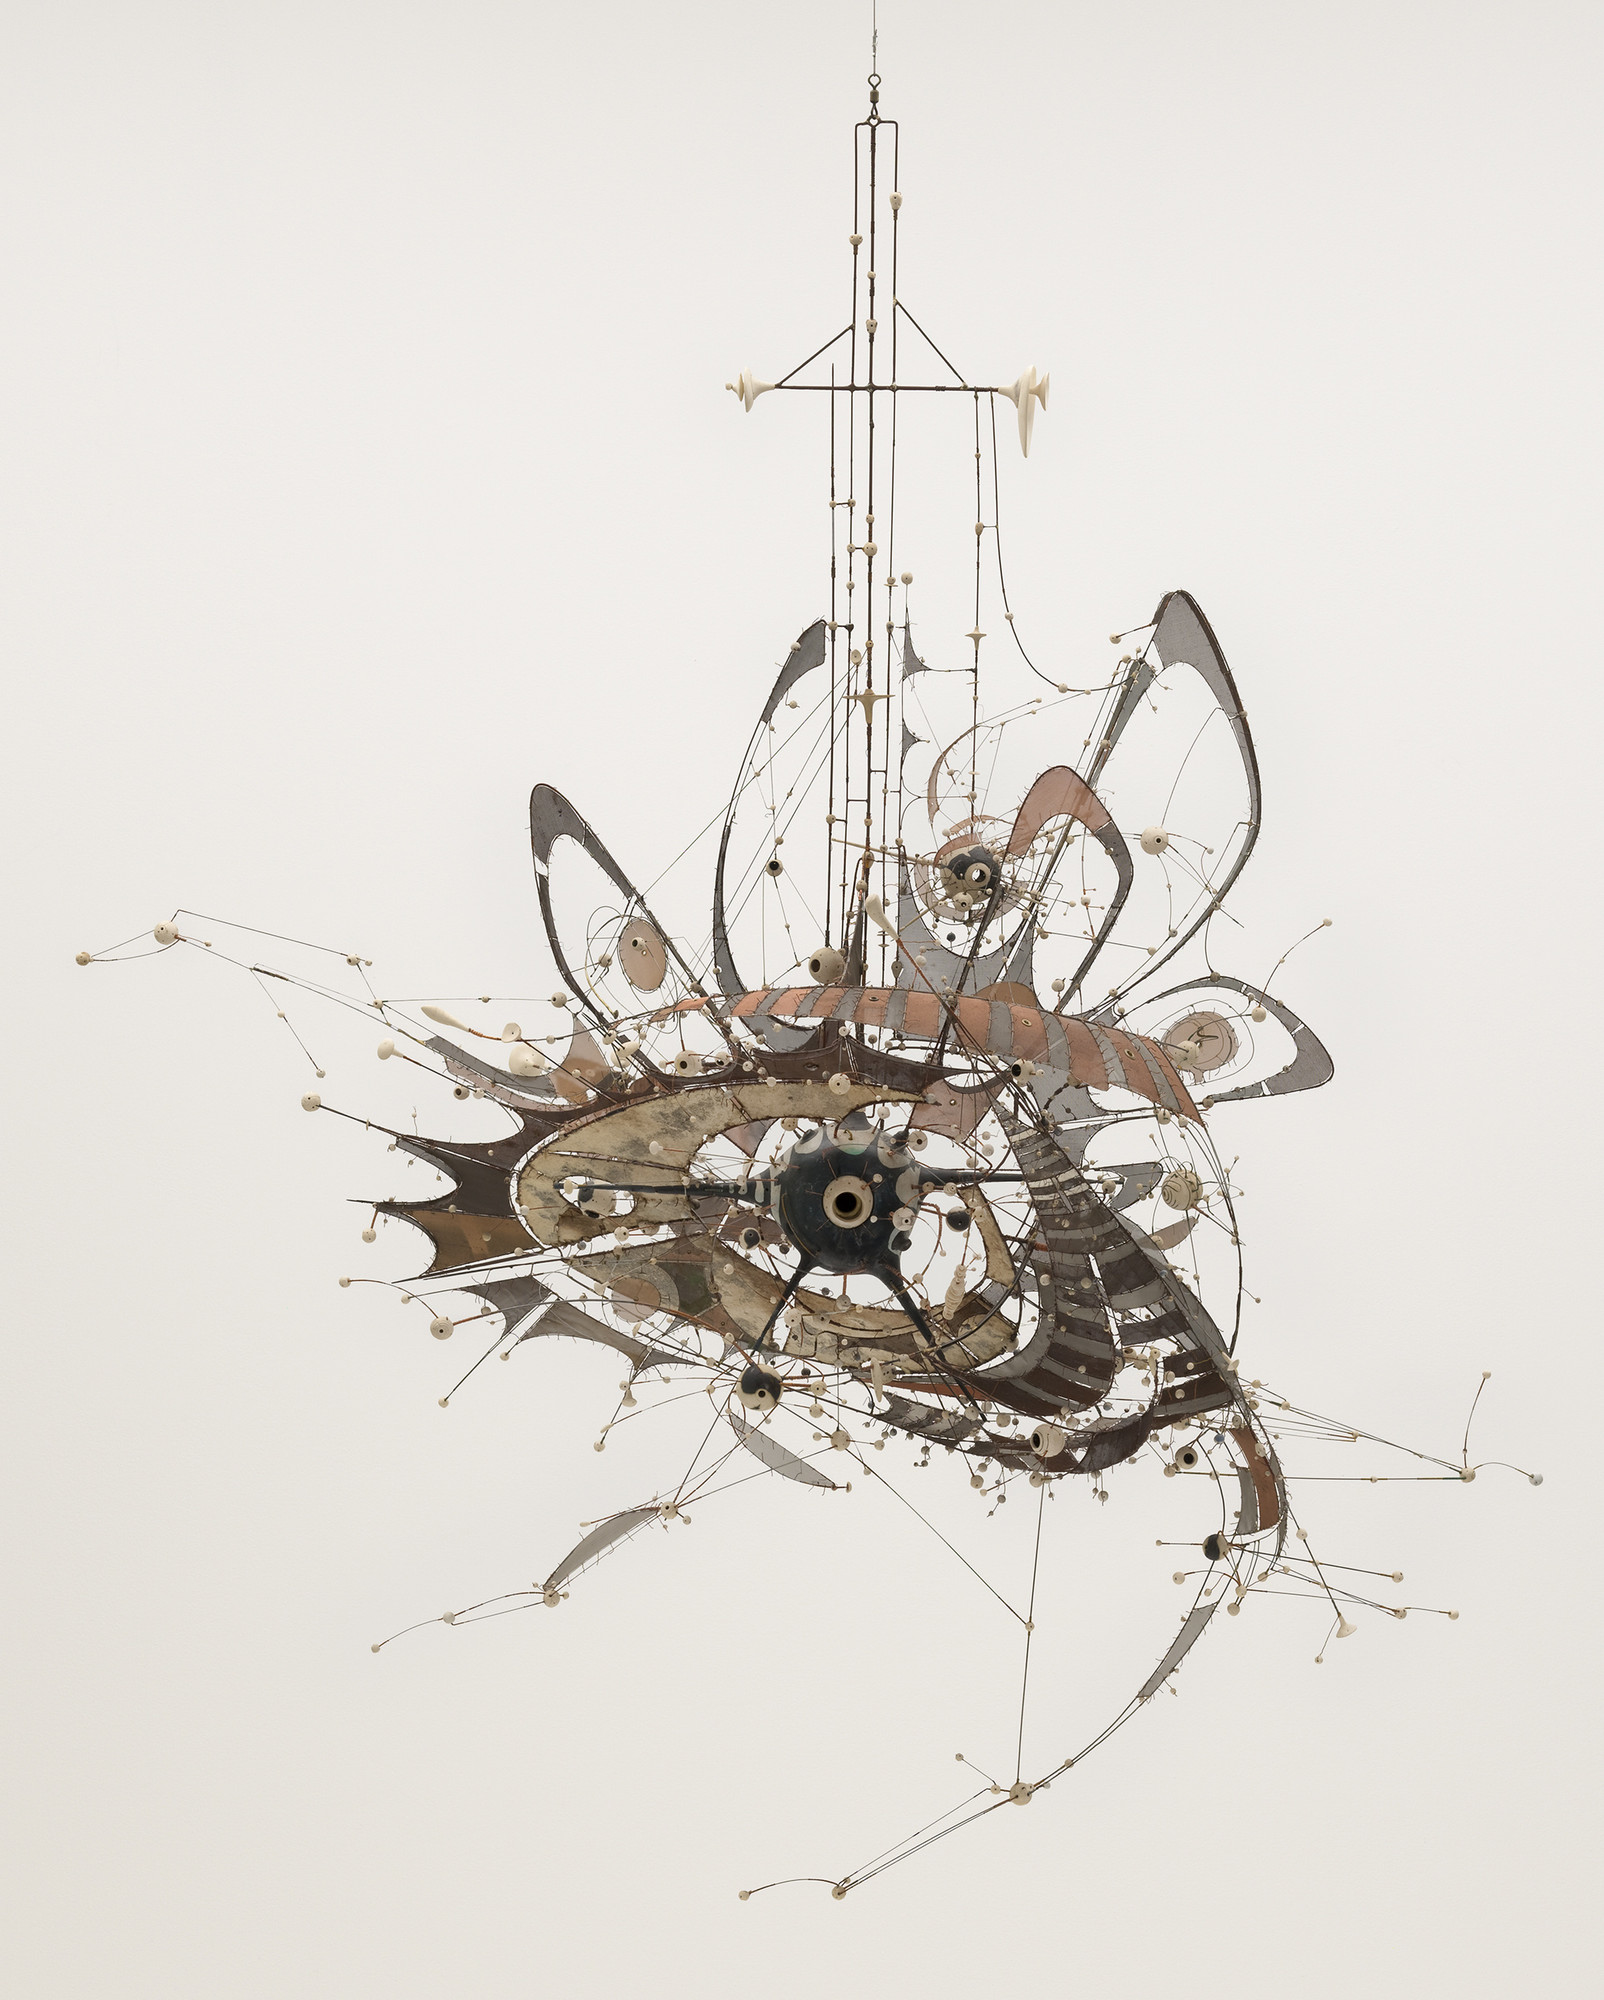 Lee Bontecou. Untitled. 1980–98. Welded steel, porcelain, wire mesh, canvas, wire, and grommets, 7 × 8 × 6′ (213.4 × 243.8 × 182.9 cm). The Museum of Modern Art, New York. Gift of Philip Johnson (by exchange) and the Nina and Gordon Bunshaft Bequest Fund. © 2010 Lee Bontecou